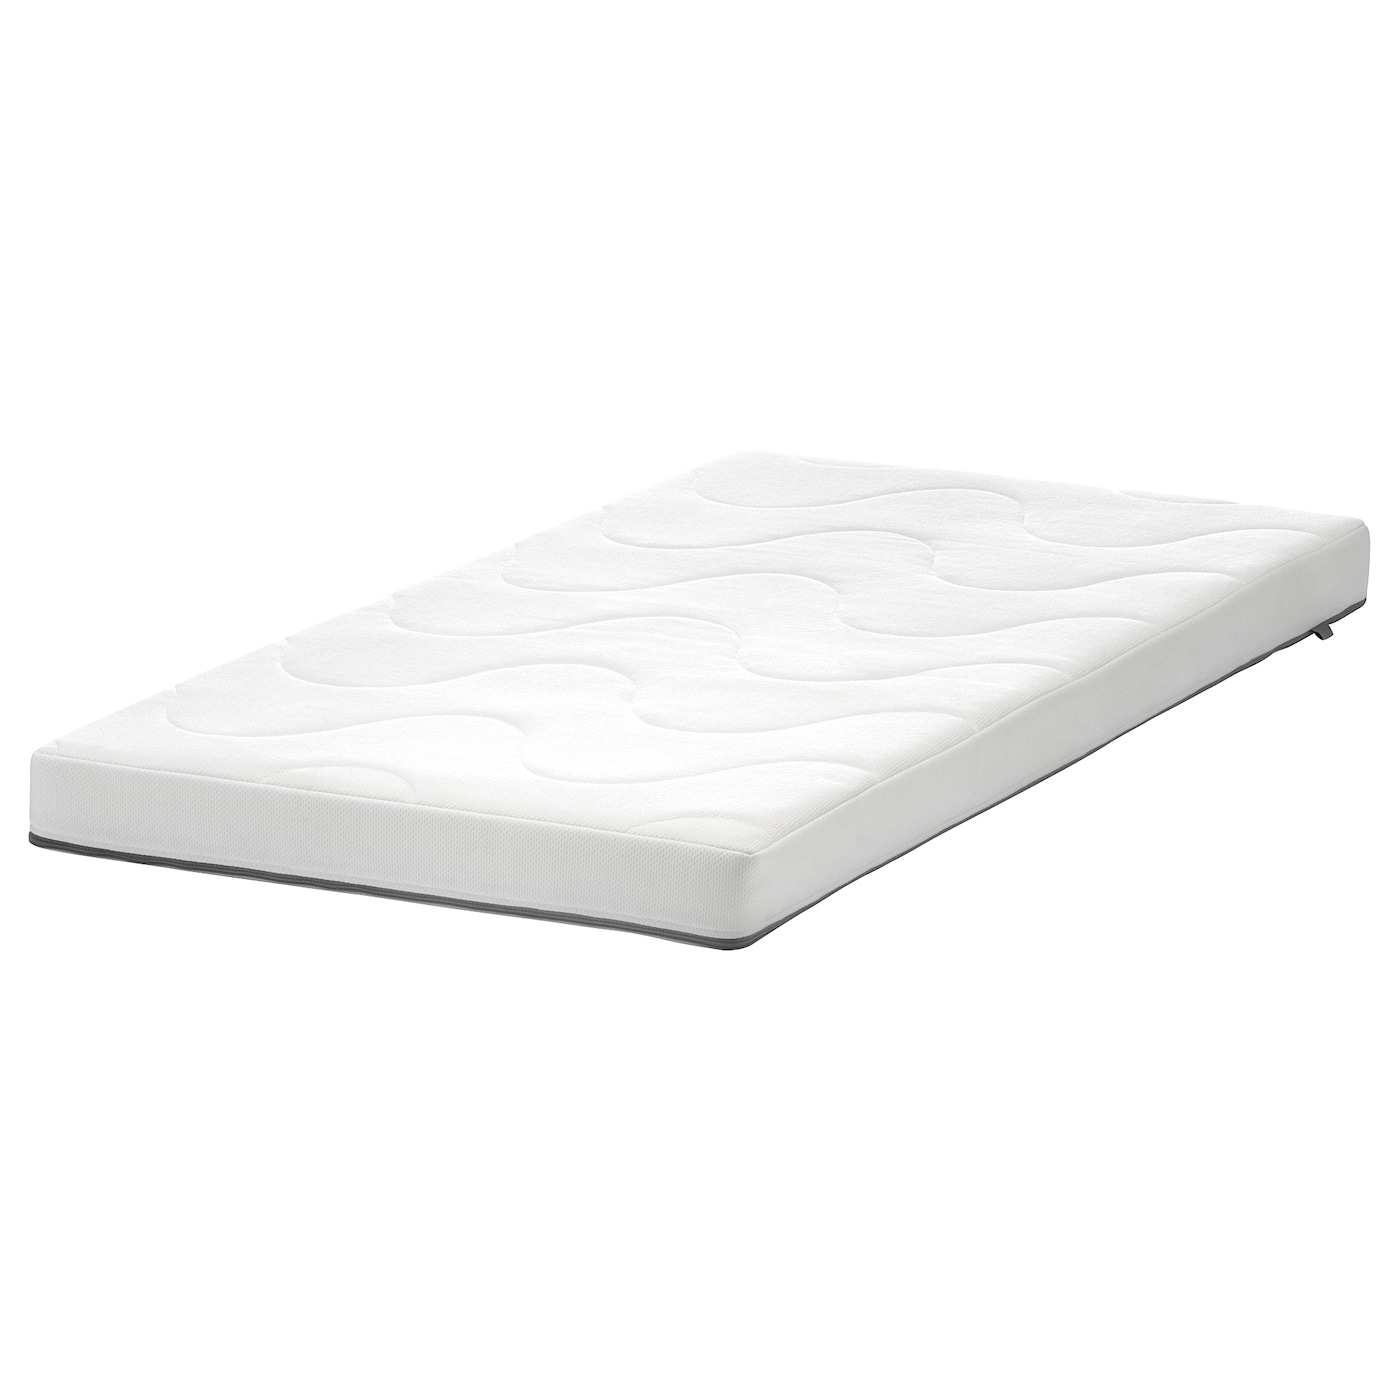 krummelur matelas mousse pour lit b b 60x120x8 cm ikea. Black Bedroom Furniture Sets. Home Design Ideas